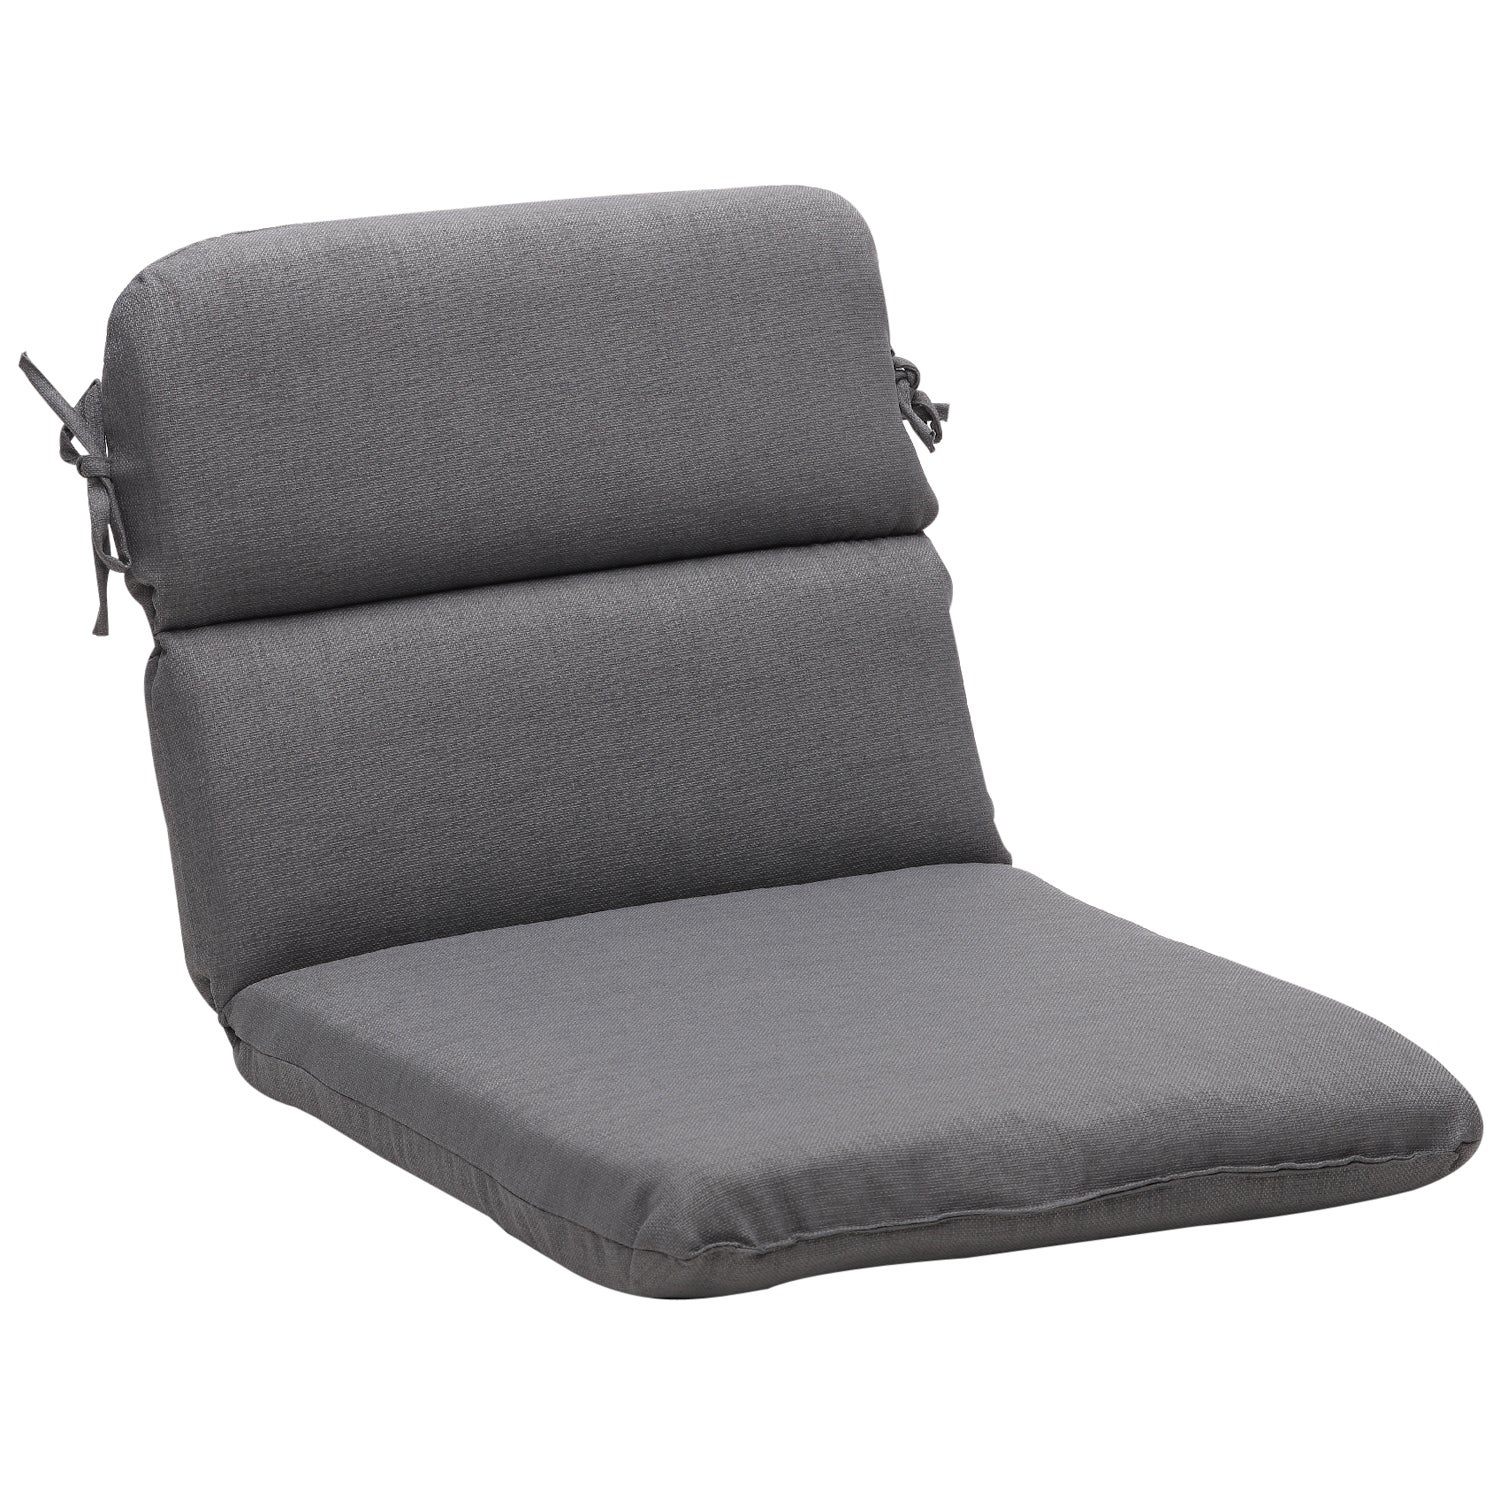 Rounded Solid Gray Textured Outdoor Chair Cushion